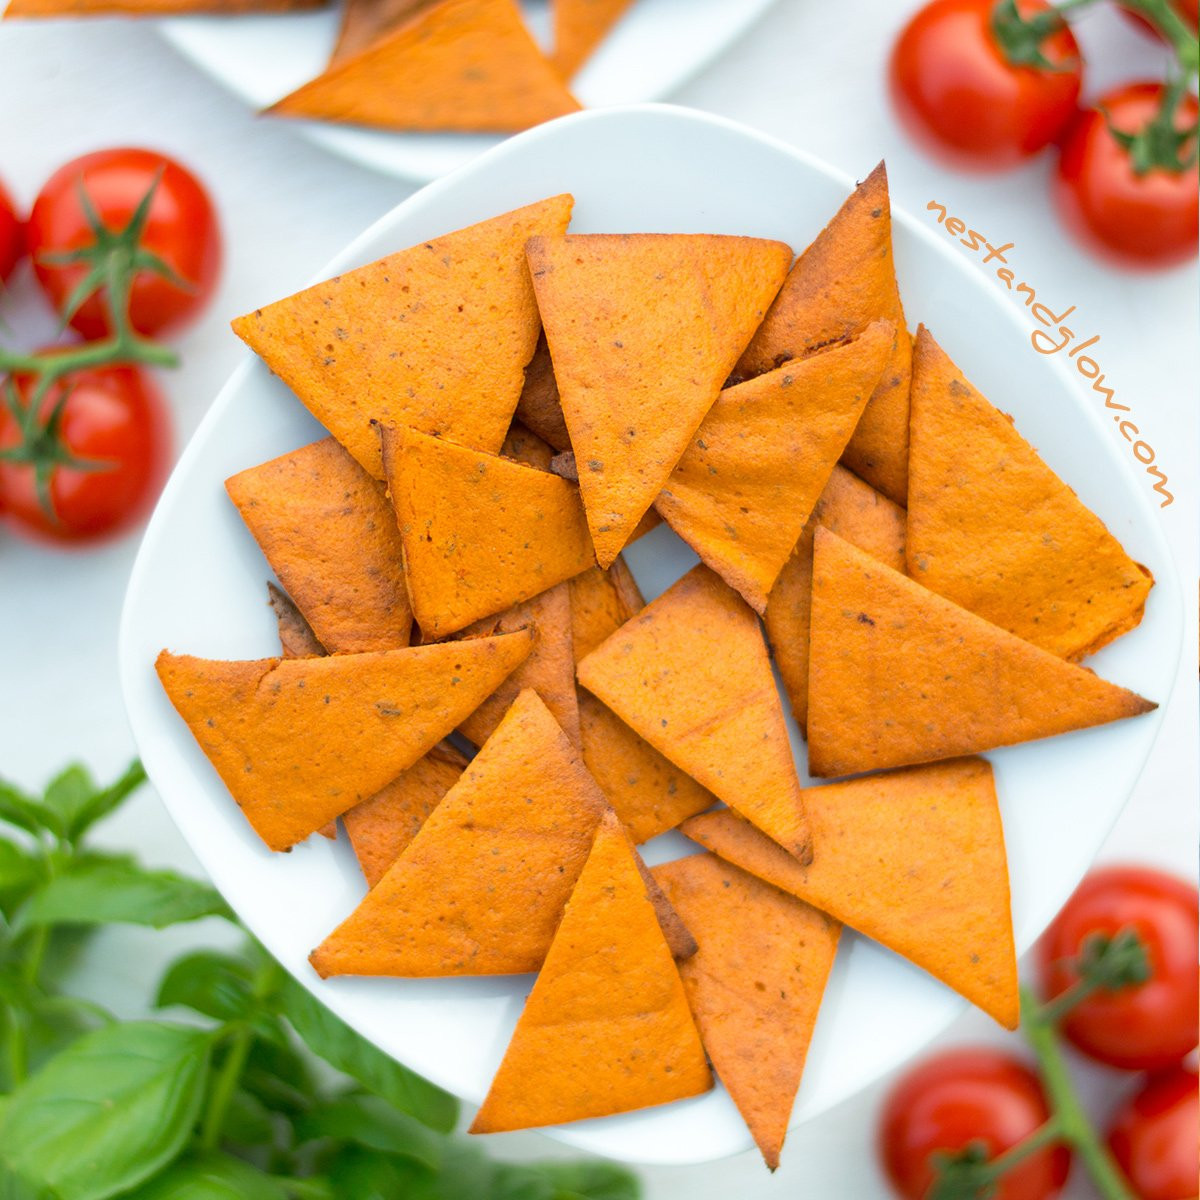 tomato and basil lentil chips recipe oil free and healthy